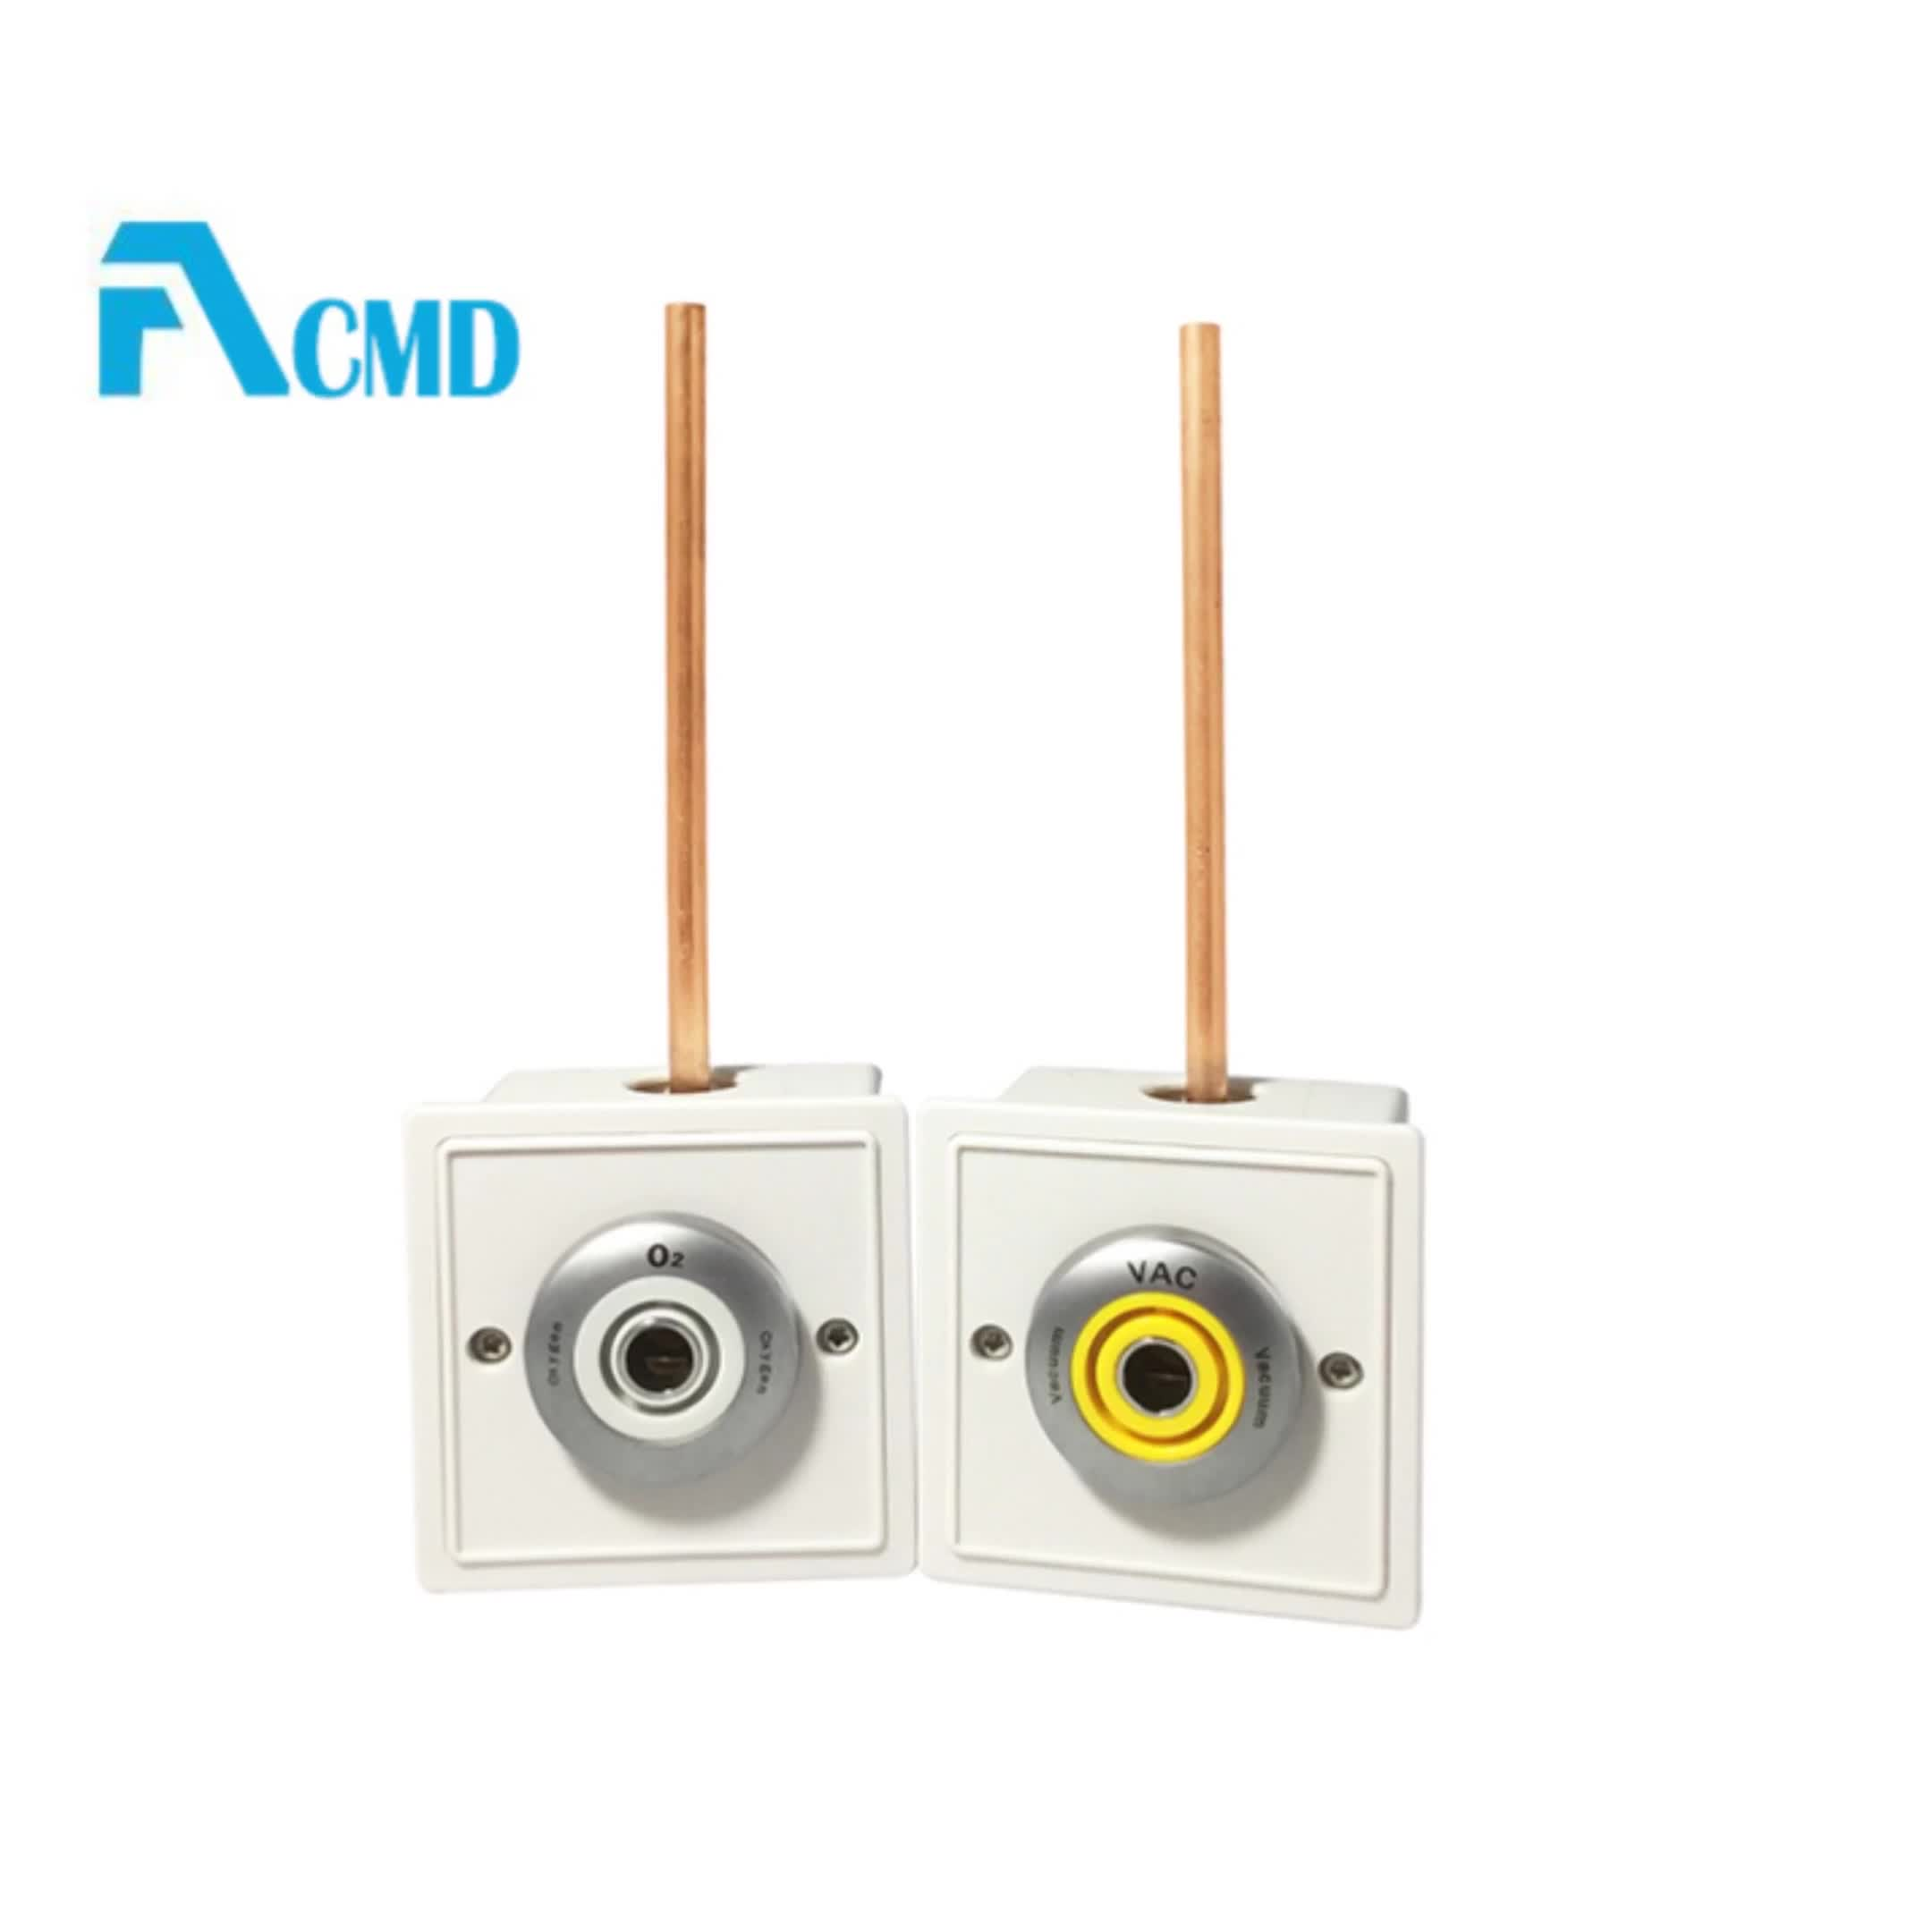 British Standard Hospital Gas Adapter CO2 Medical Gas Outlet